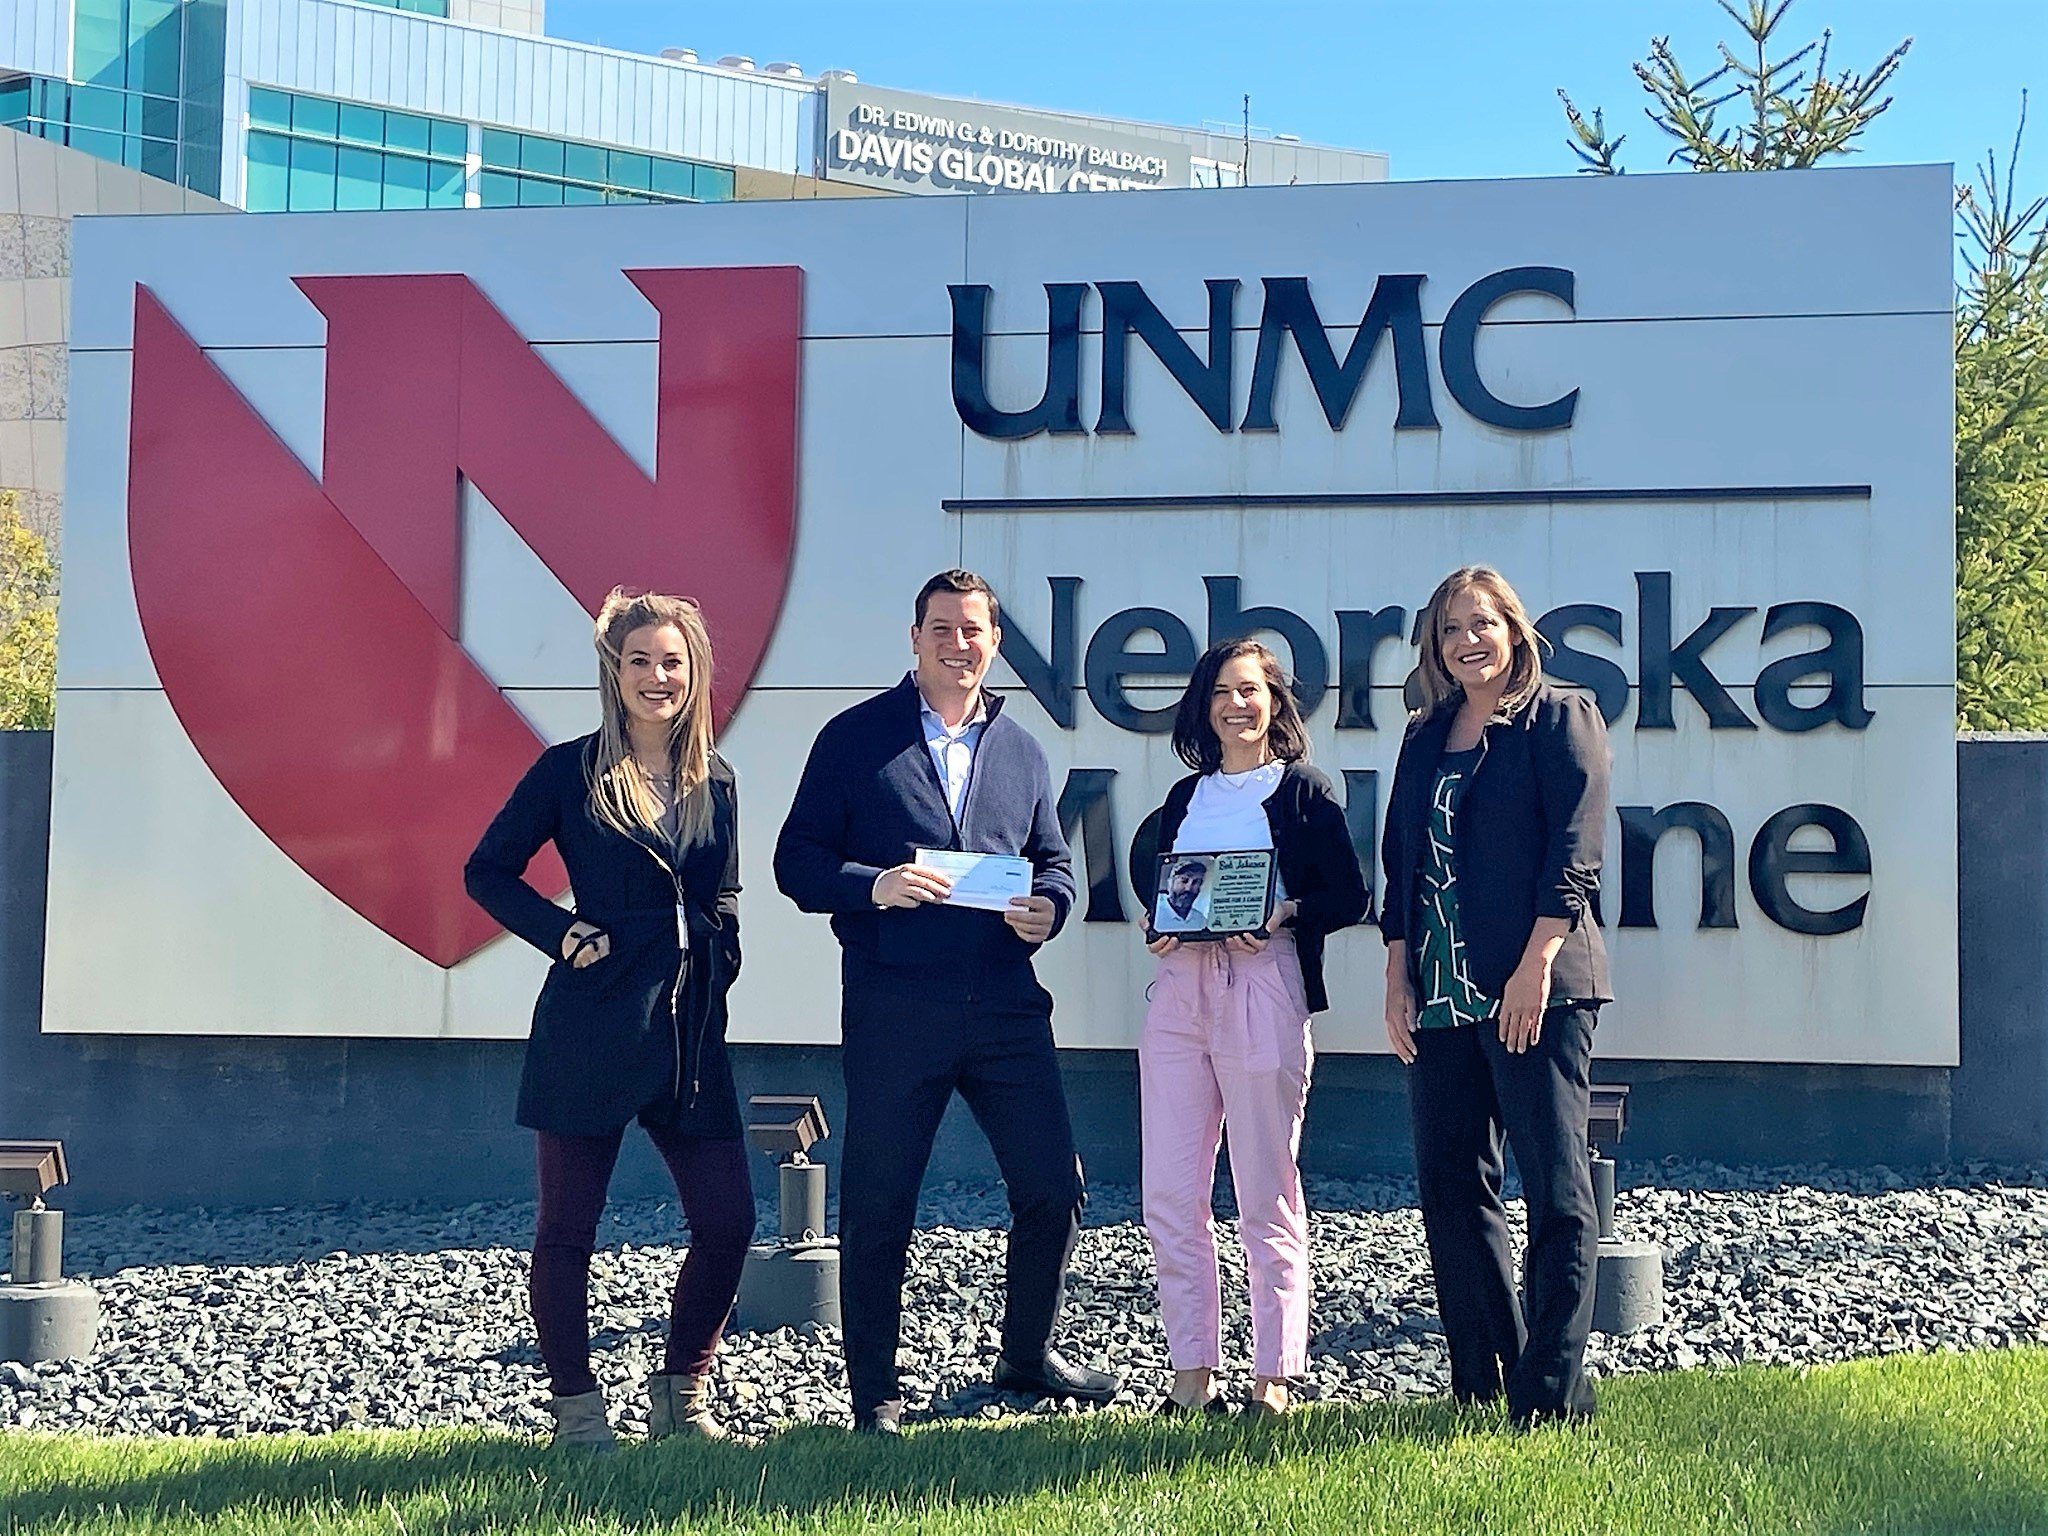 (From Left to Right: Katie Swantek, Regional Director of Talent Acquisitions at Azria Health, Steve Hornung, Principal at Azria Health, Liz Davis, Director of Corporate and Foundation Relations at UNMC, and Carrie Ramaekers, Vice President of Operations at Azria Health.)